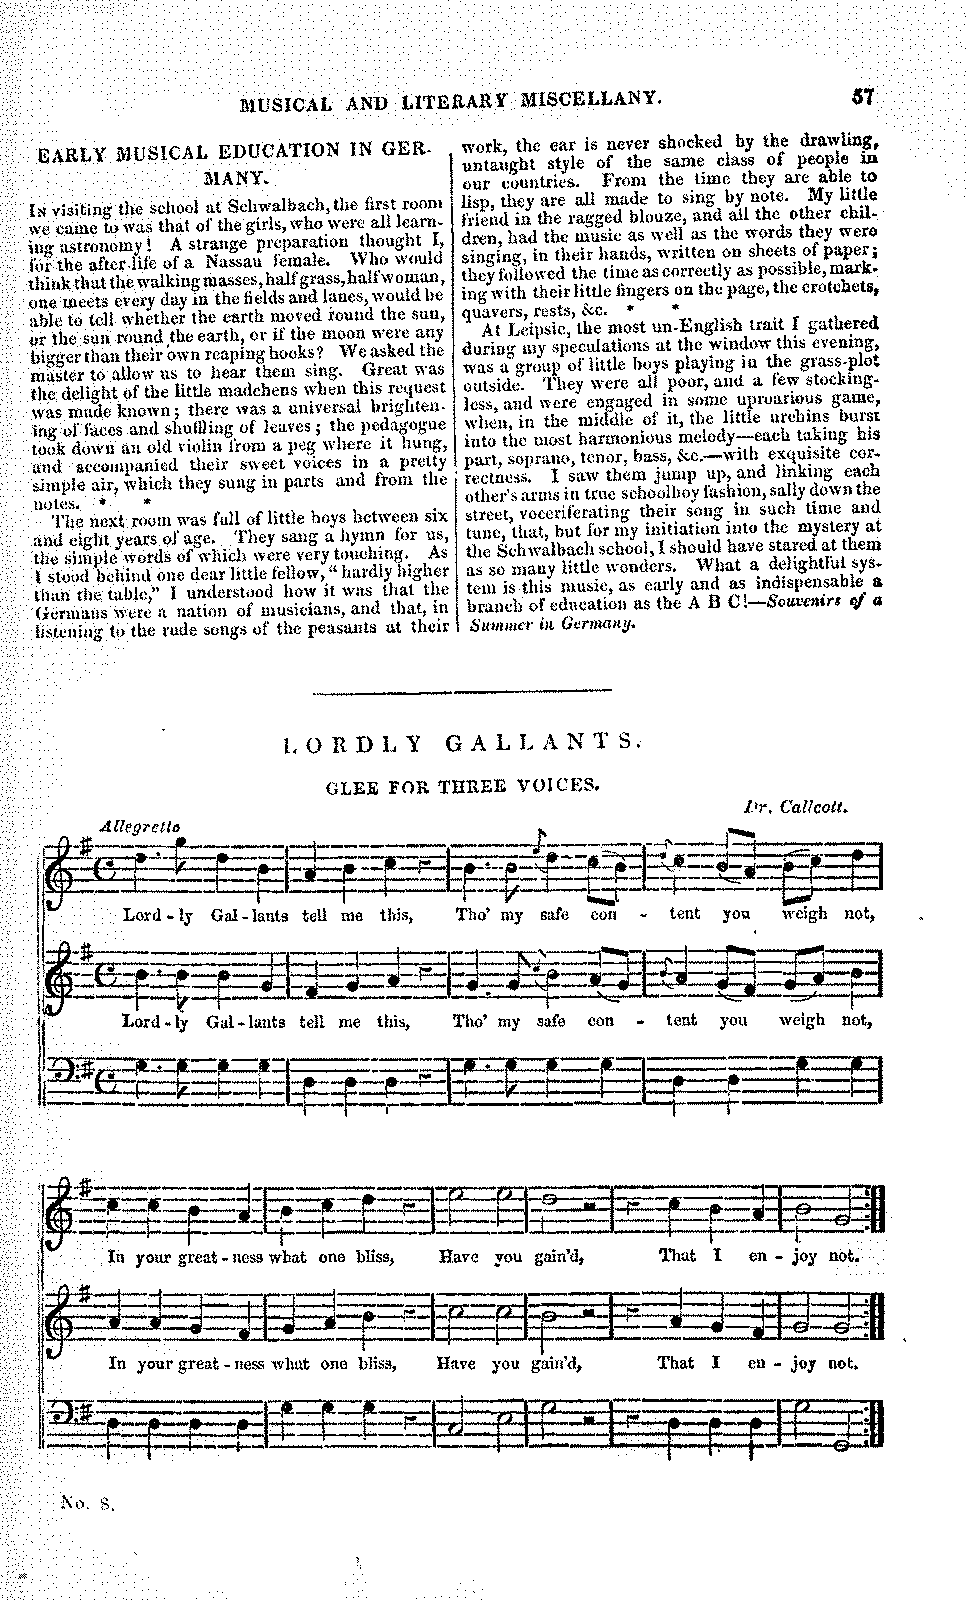 PMLP218272-callcott lordly gallants britishminstrel 1.pdf